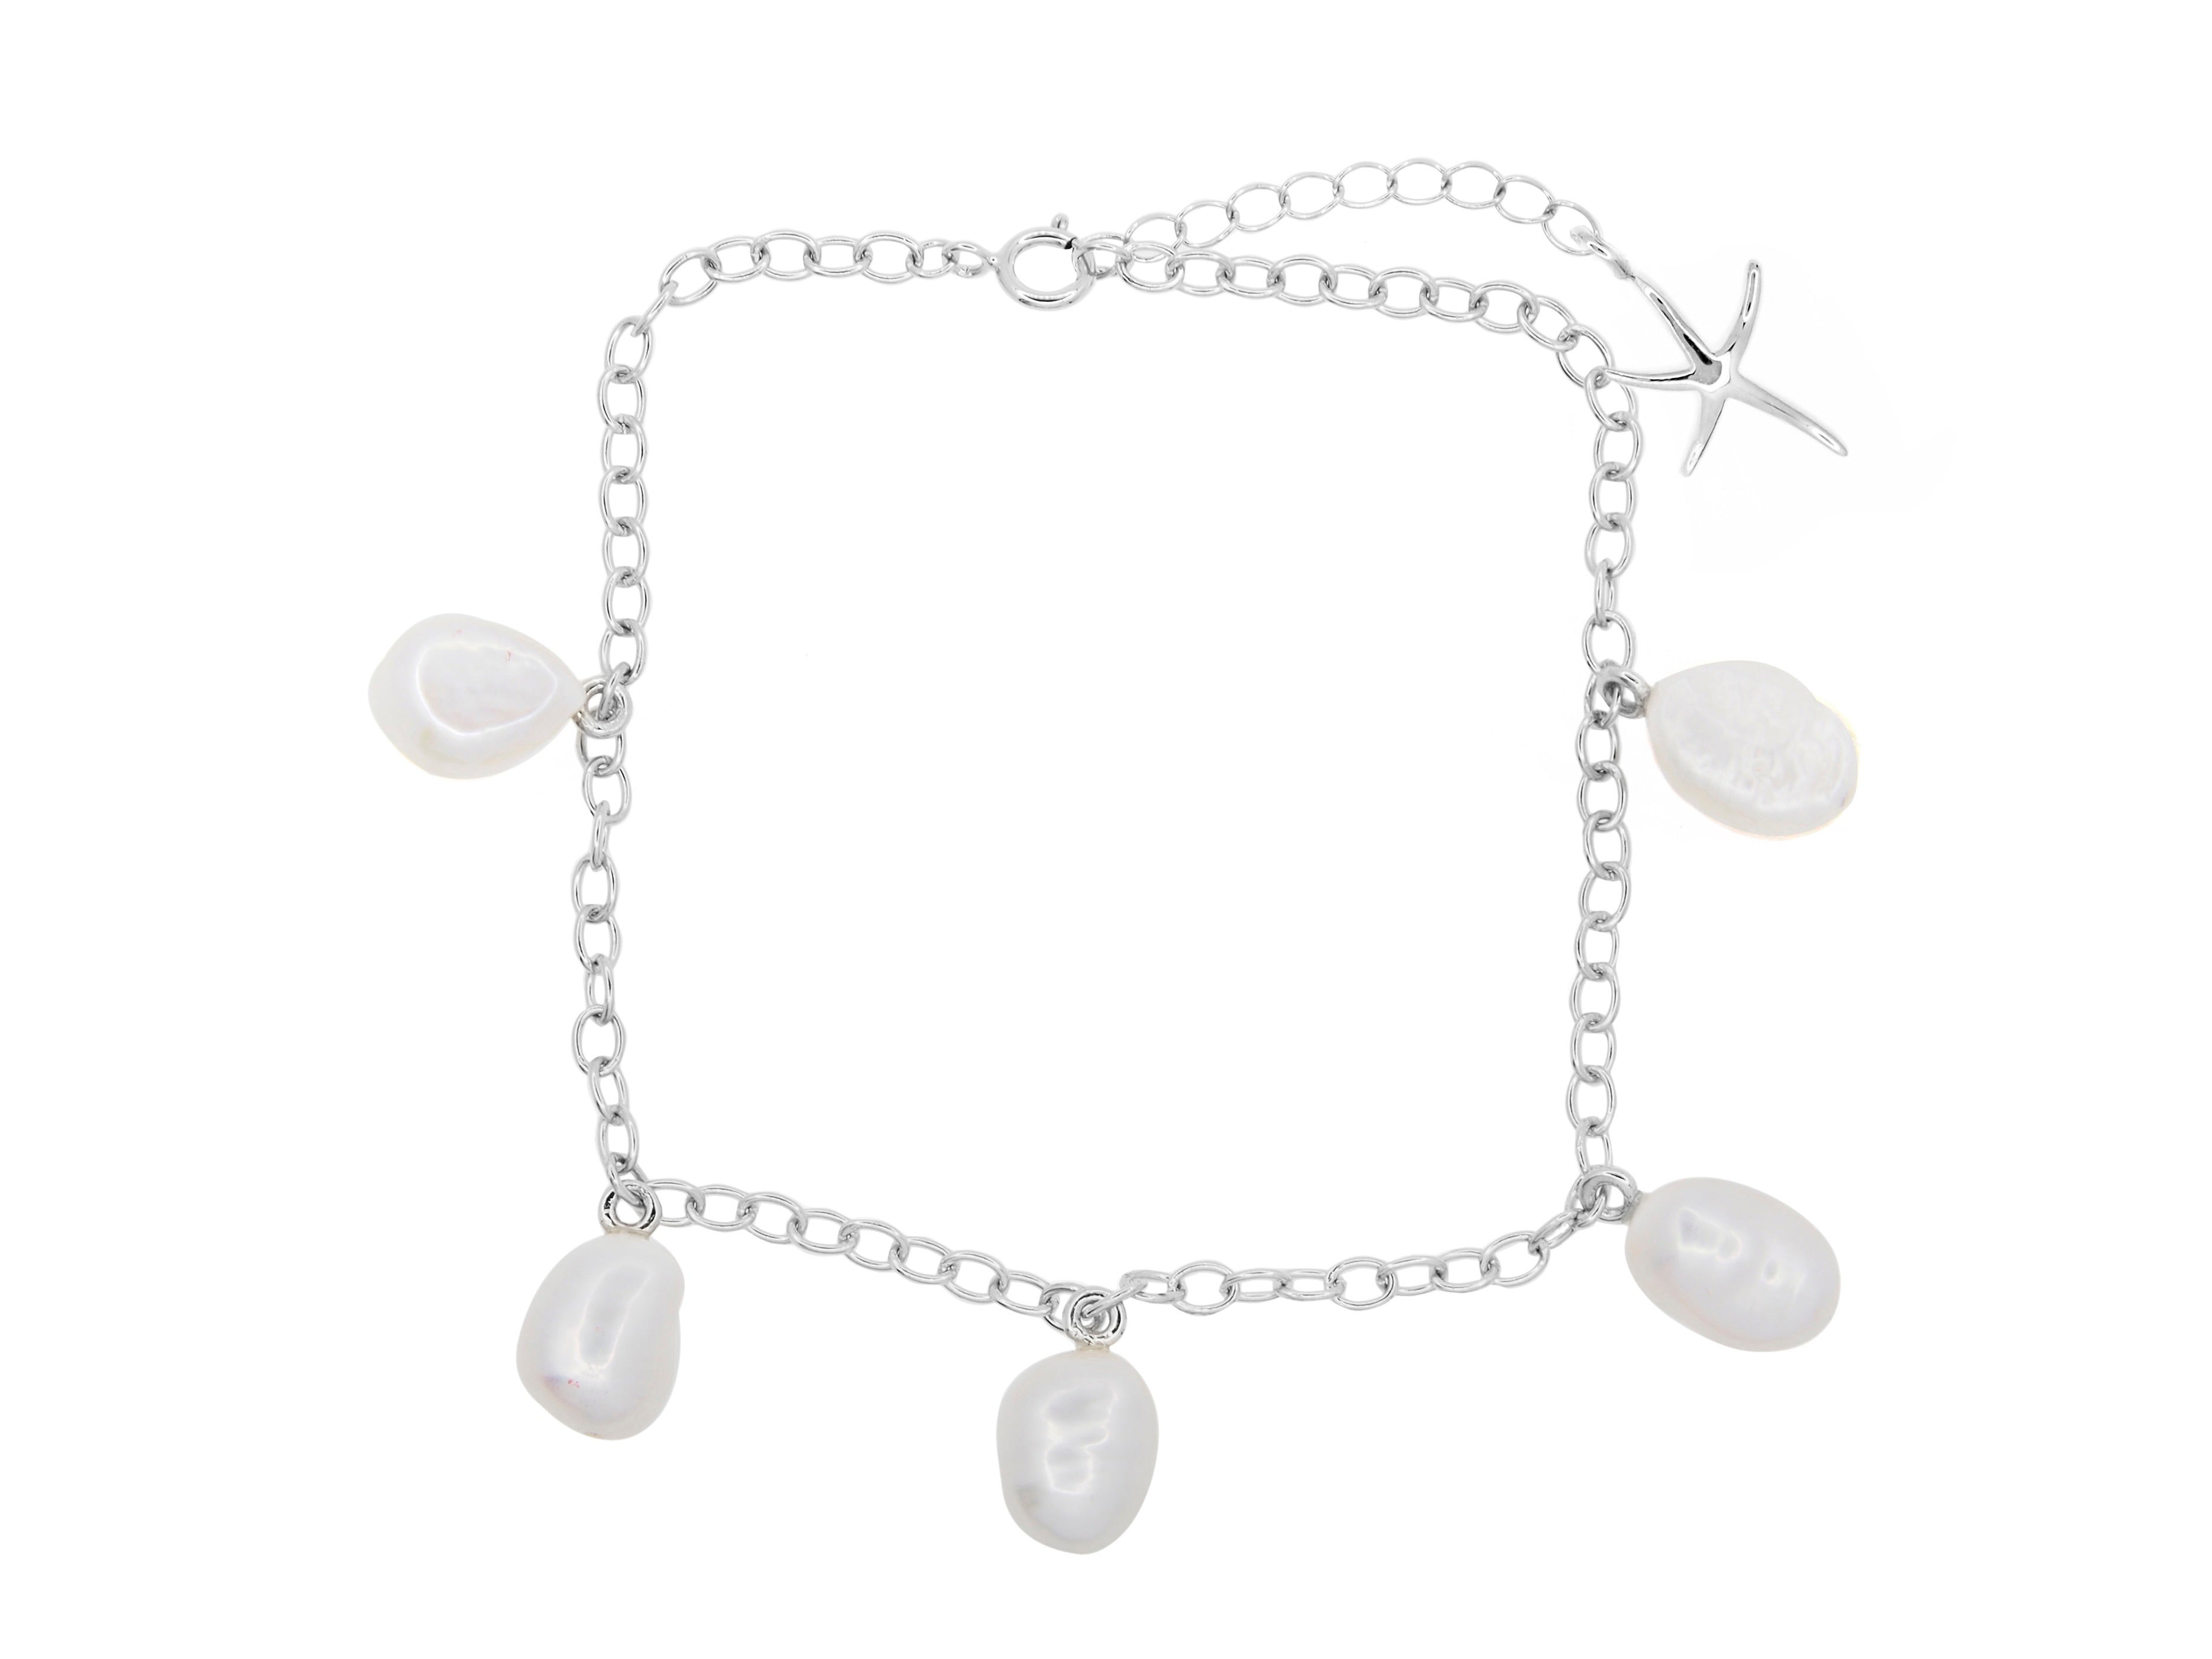 Cable Beach Anklet - Silver (Rhodium Plated)